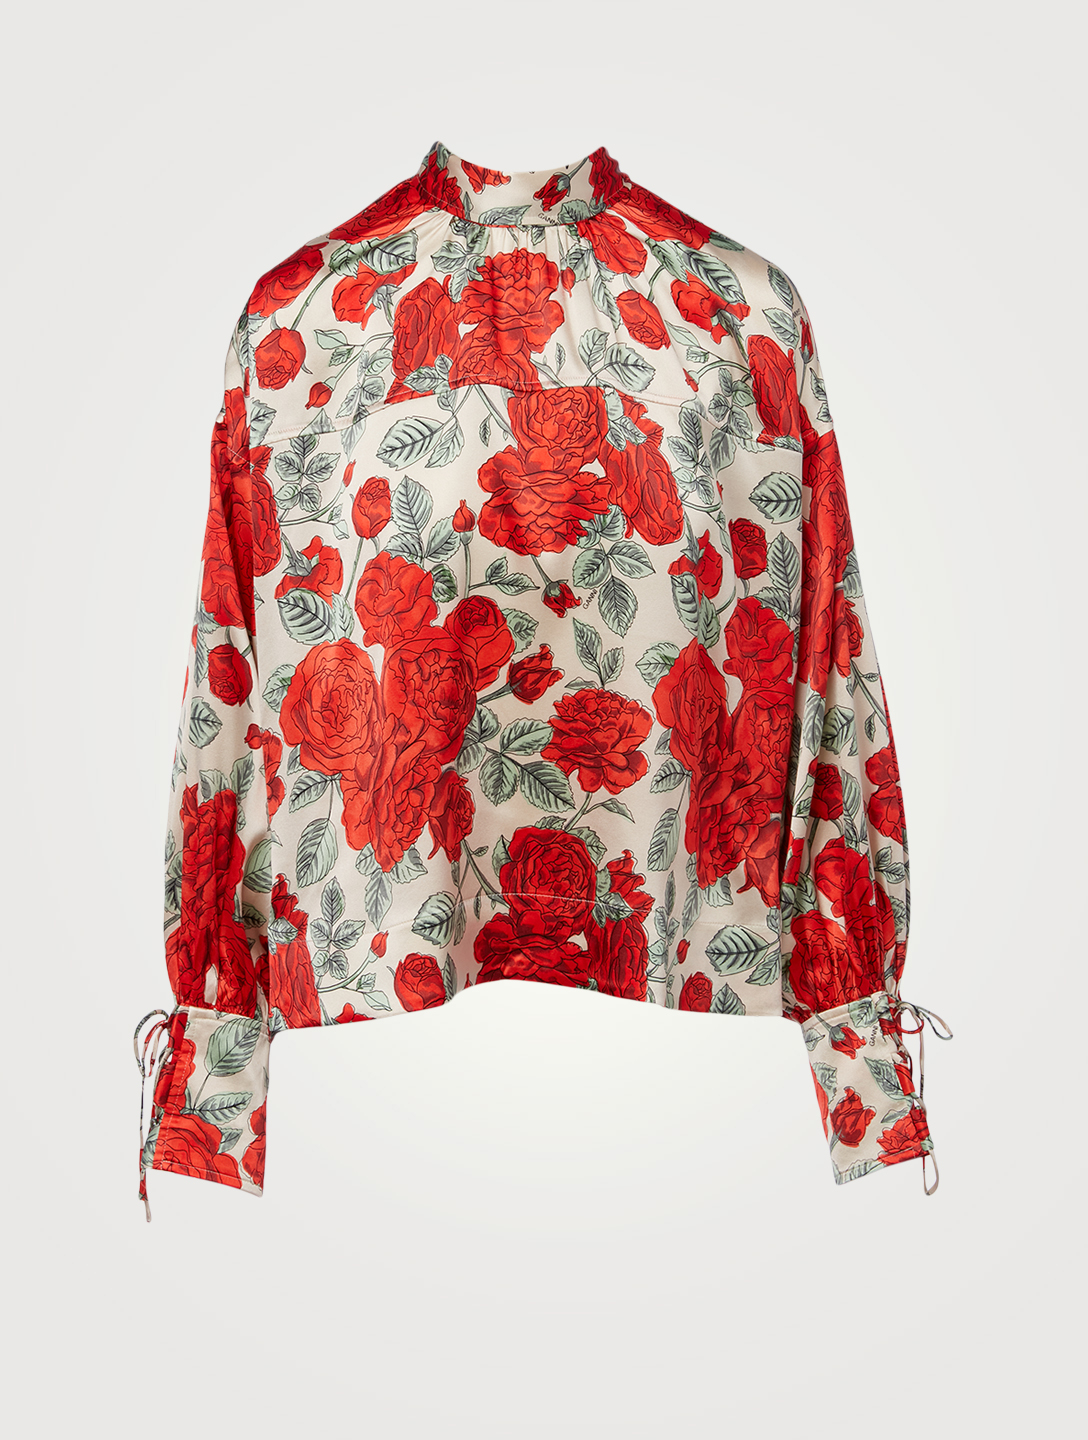 GANNI Silk Stretch Satin Neck-Tie Oversized Blouse In Floral Print Women's Red